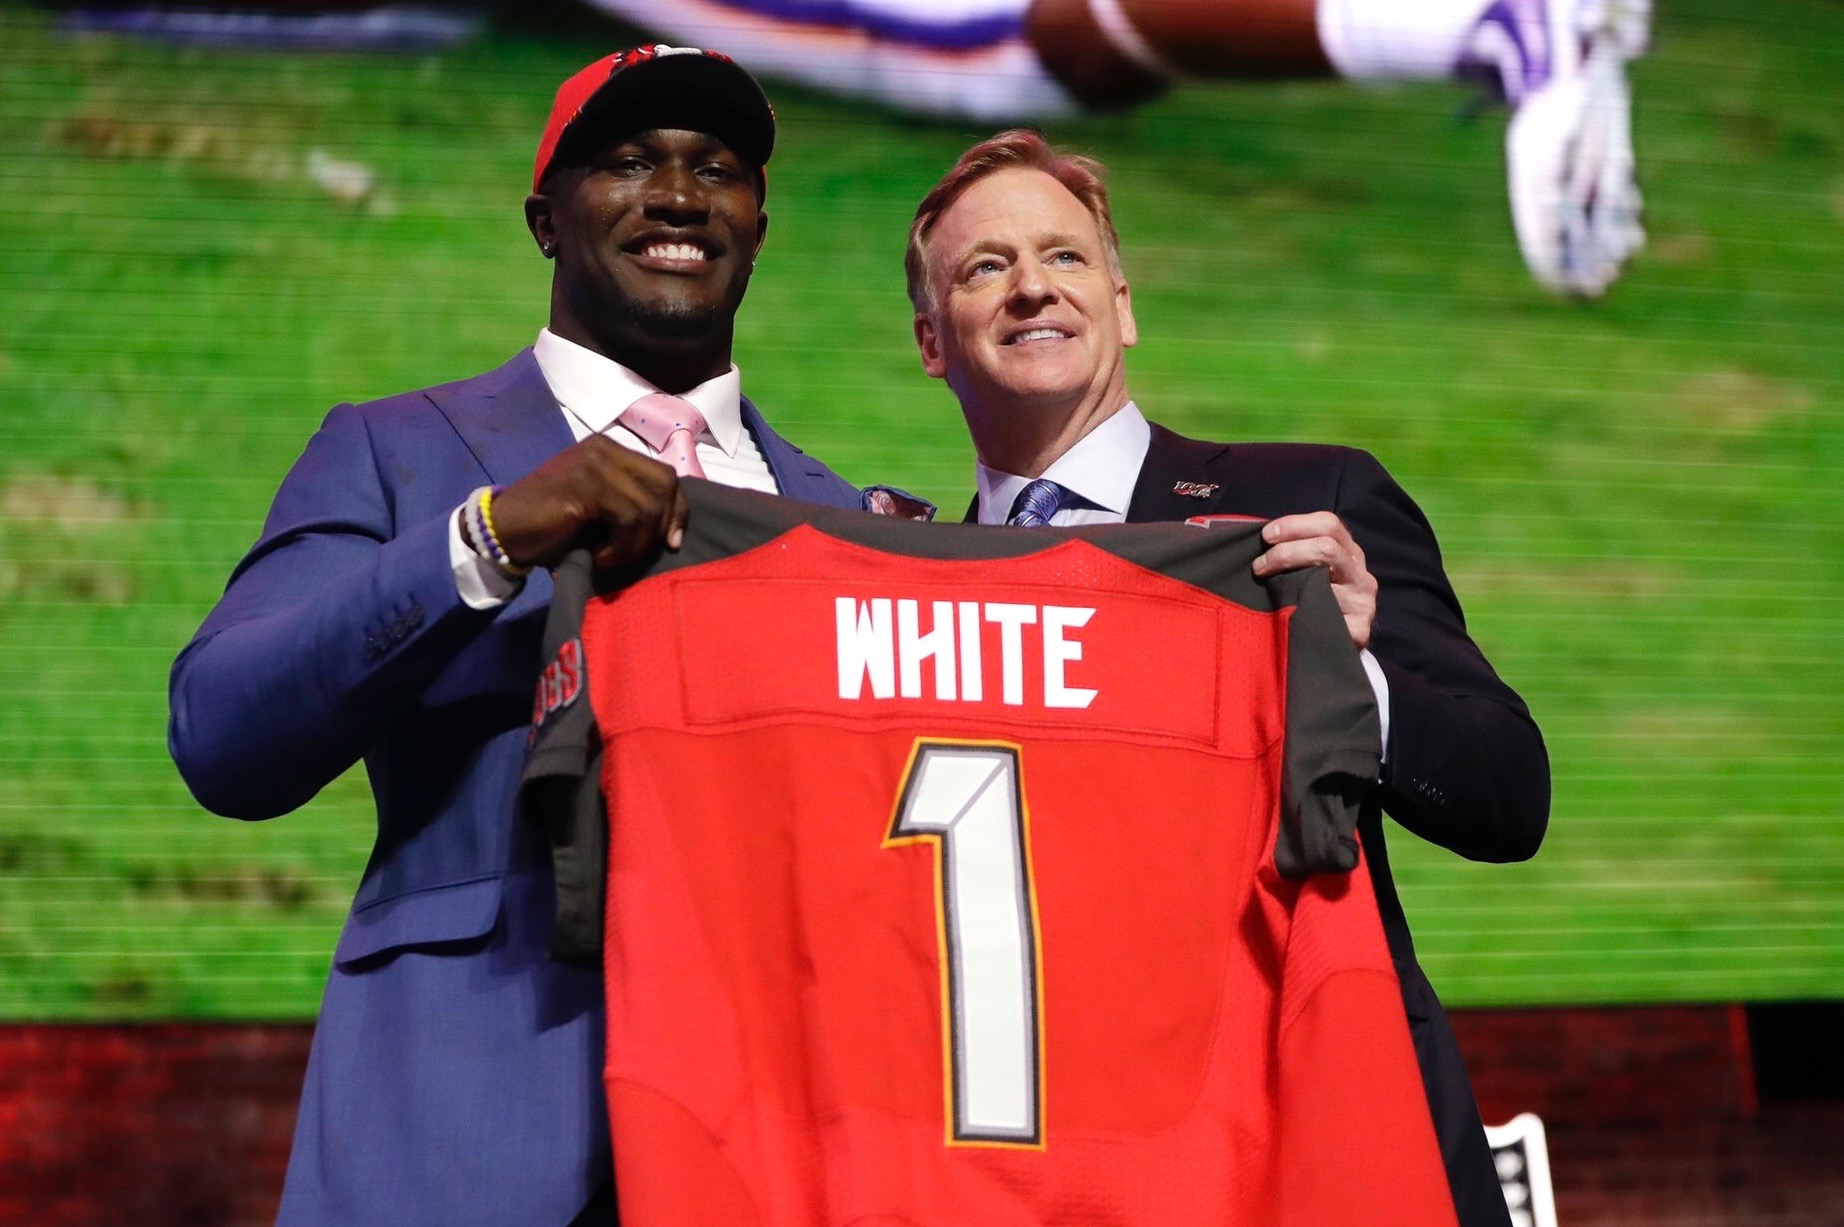 Devin White selected No. 5 overall to the Buccaneers